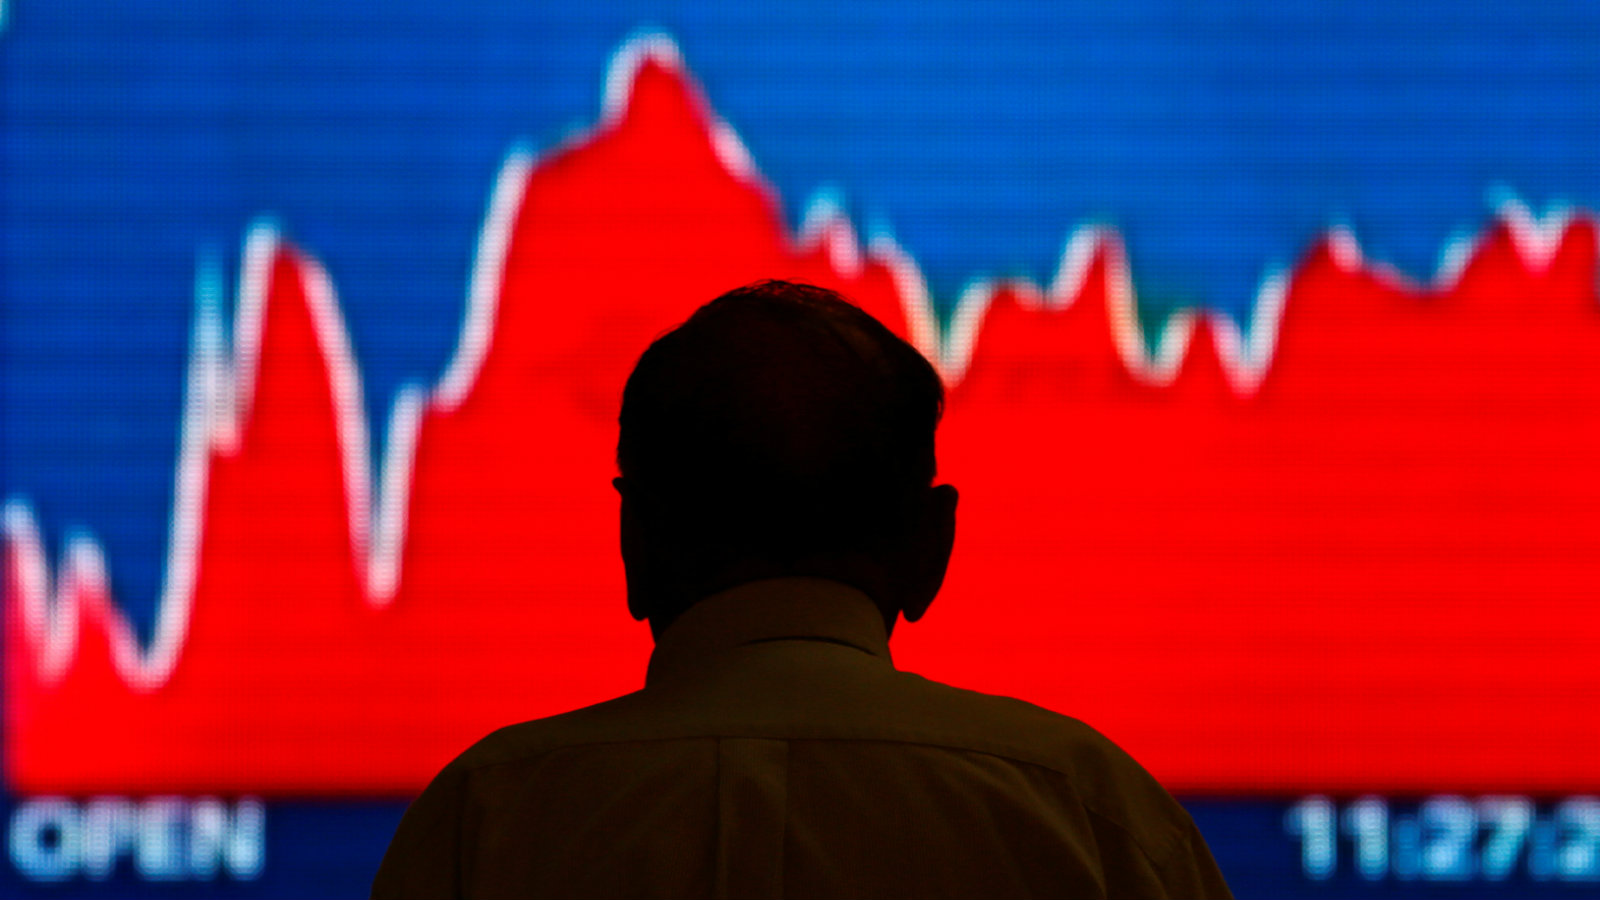 A man looks at a screen displaying news of markets update inside the Bombay Stock Exchange (BSE) building in Mumbai, India June 20, 2016.